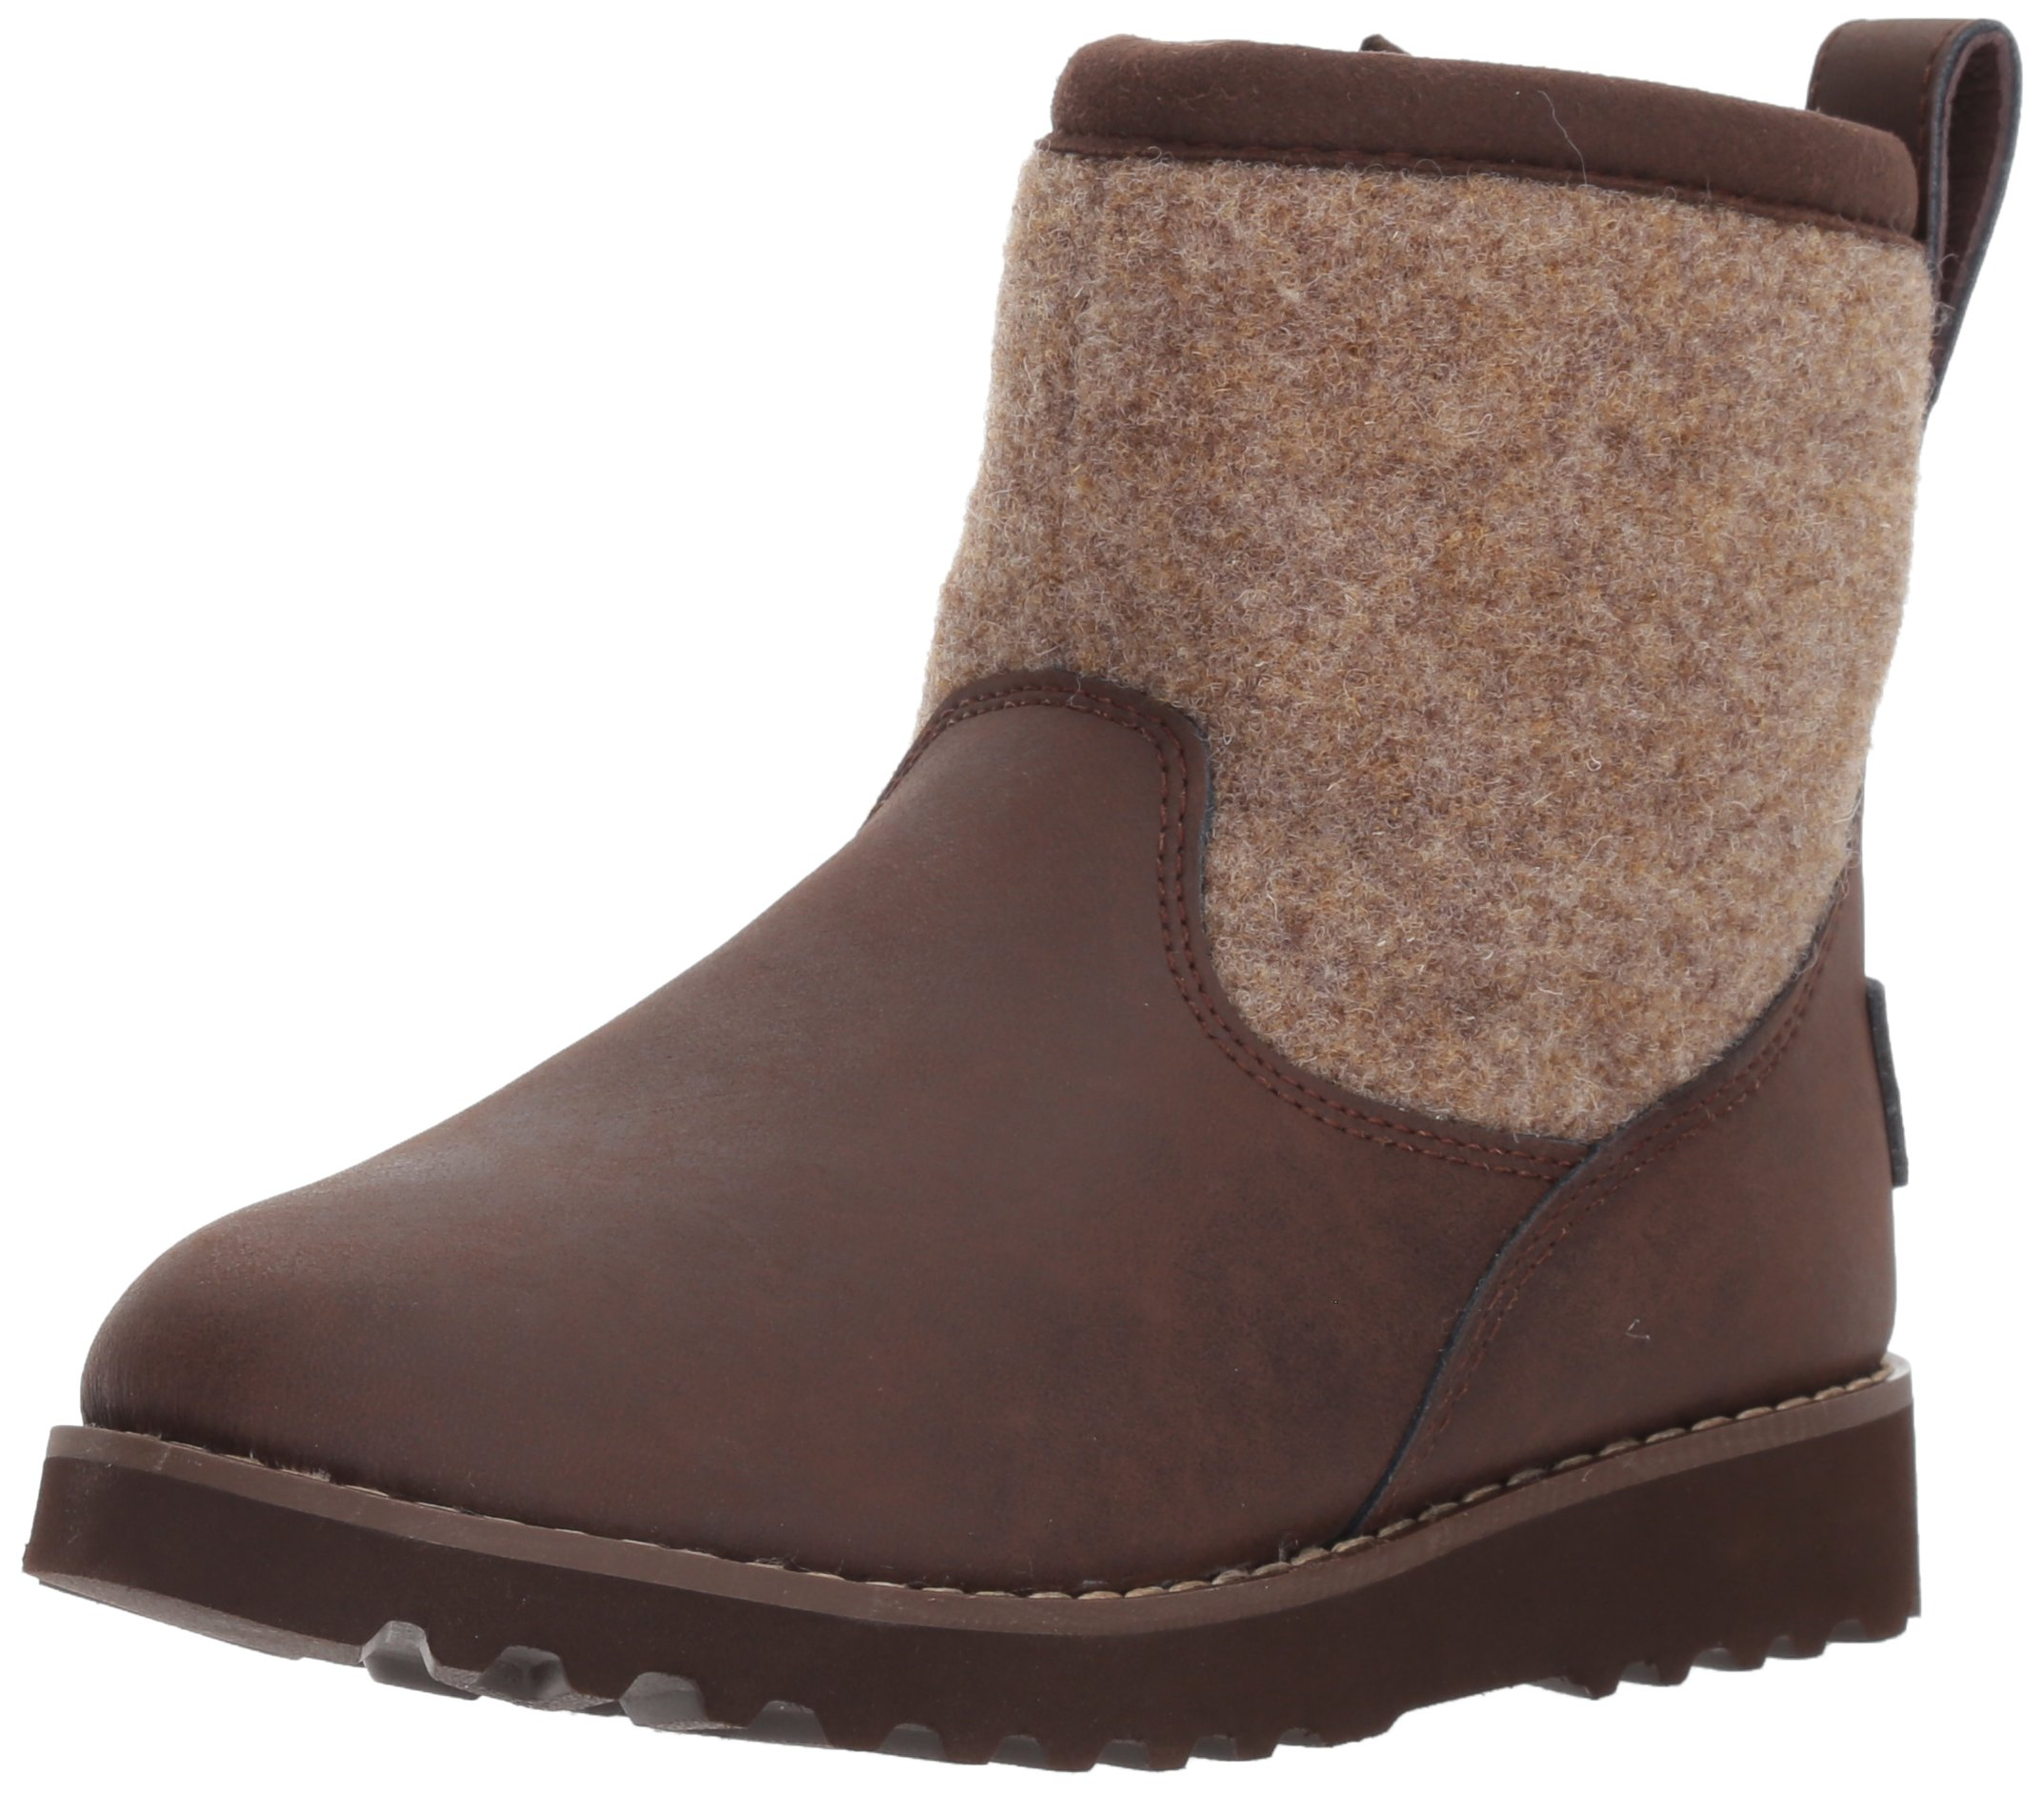 UGG Unisex Bayson Zip Boot, Stout, 10 M US Toddler by UGG